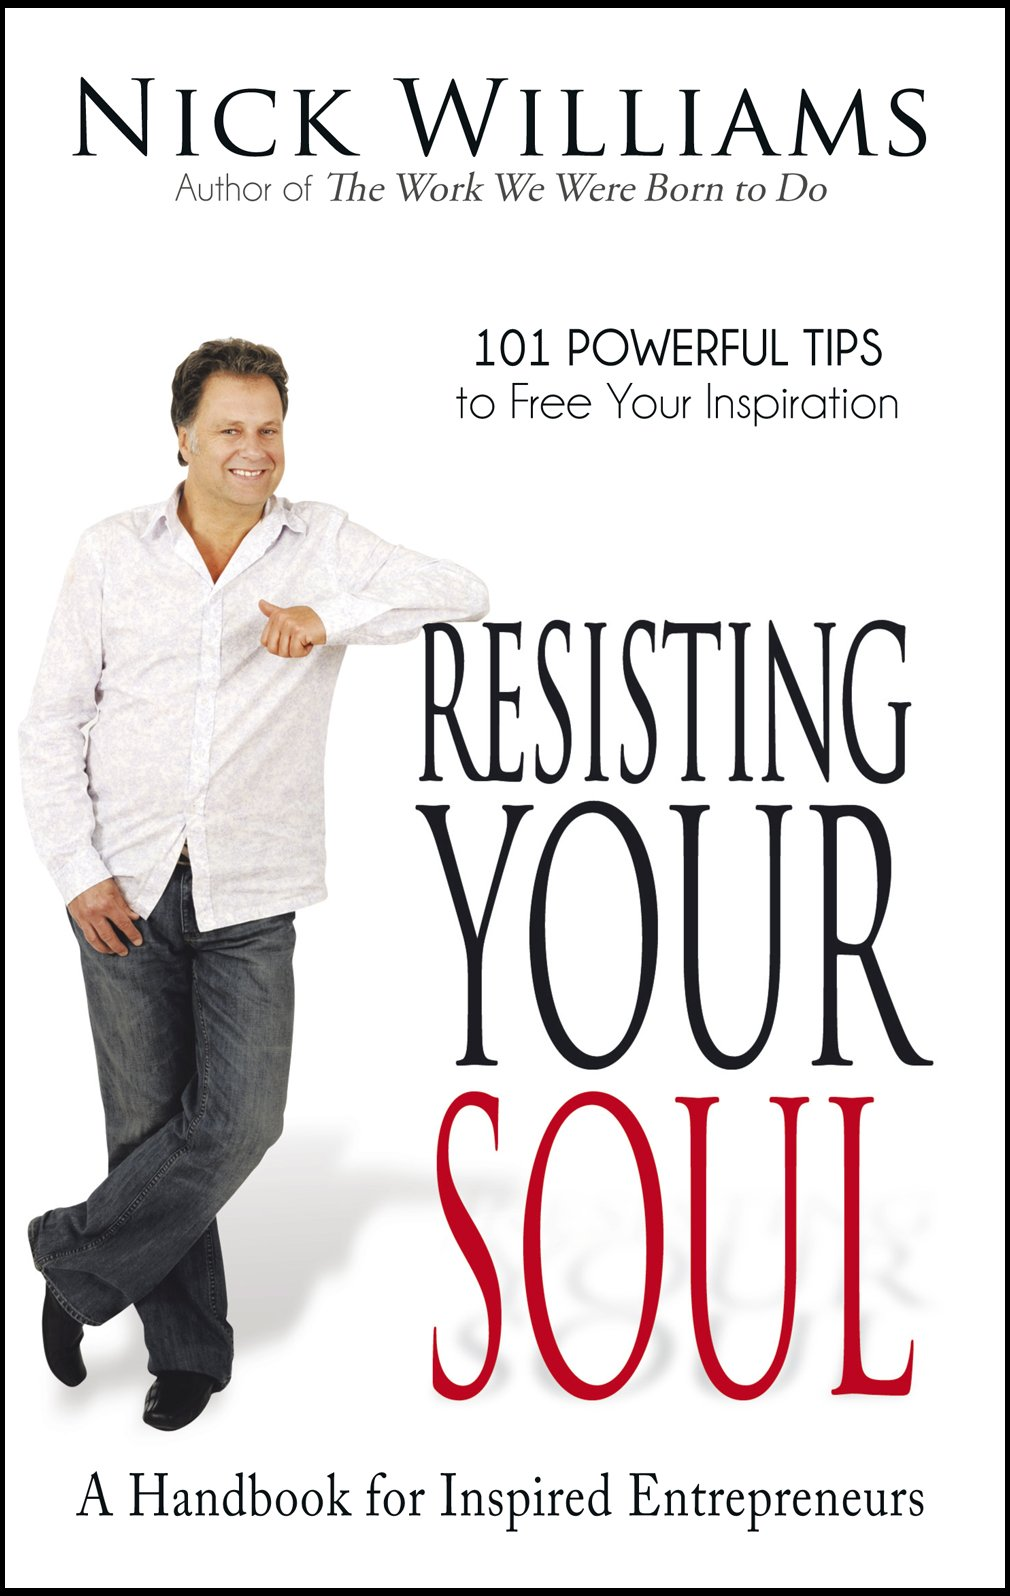 Resisting Your Soul: A Handbook for Inspired Entrepreneurs: 101 Powerful Tips to Free Your Inspiration ePub fb2 book